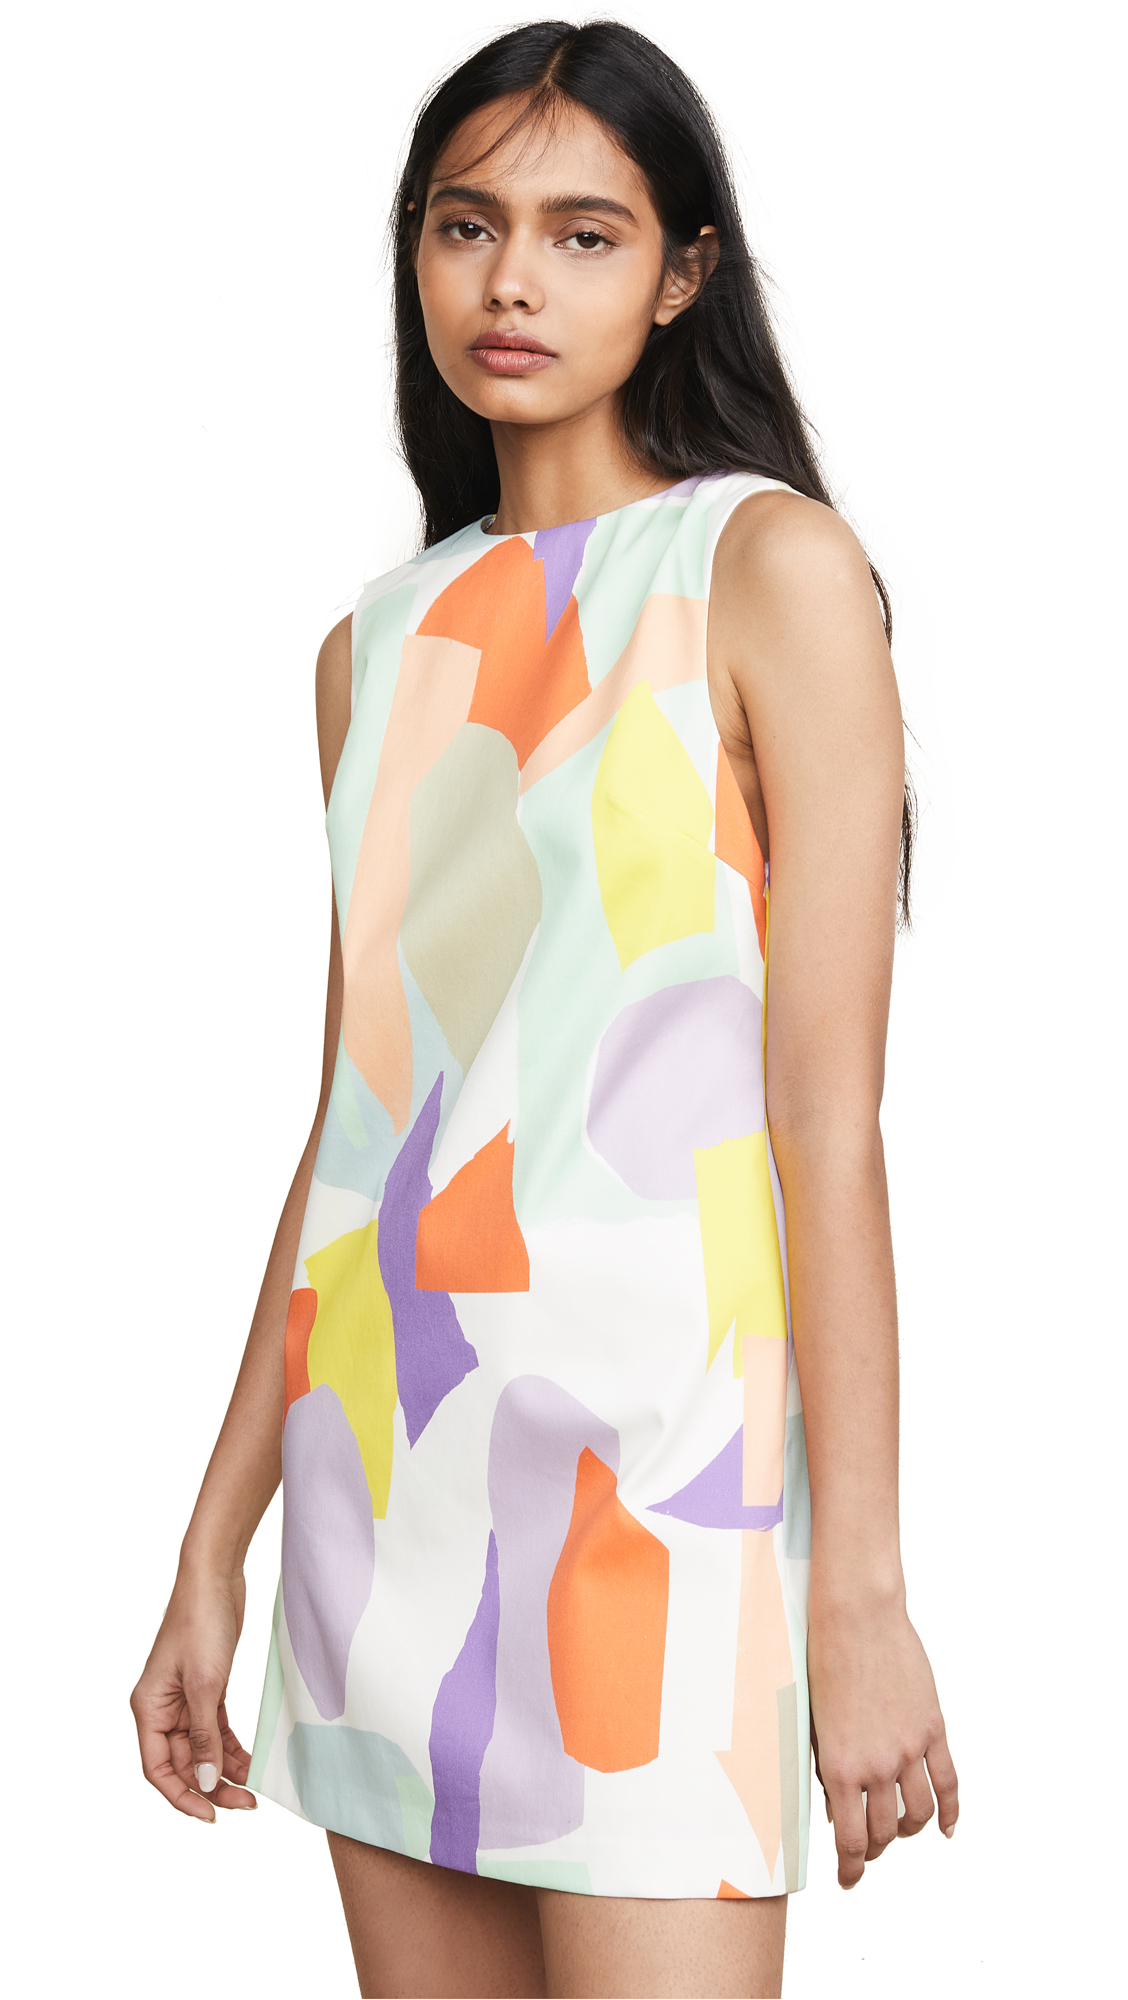 alice + olivia Clyde Shift Dress - Geo Collage Cream/Mu